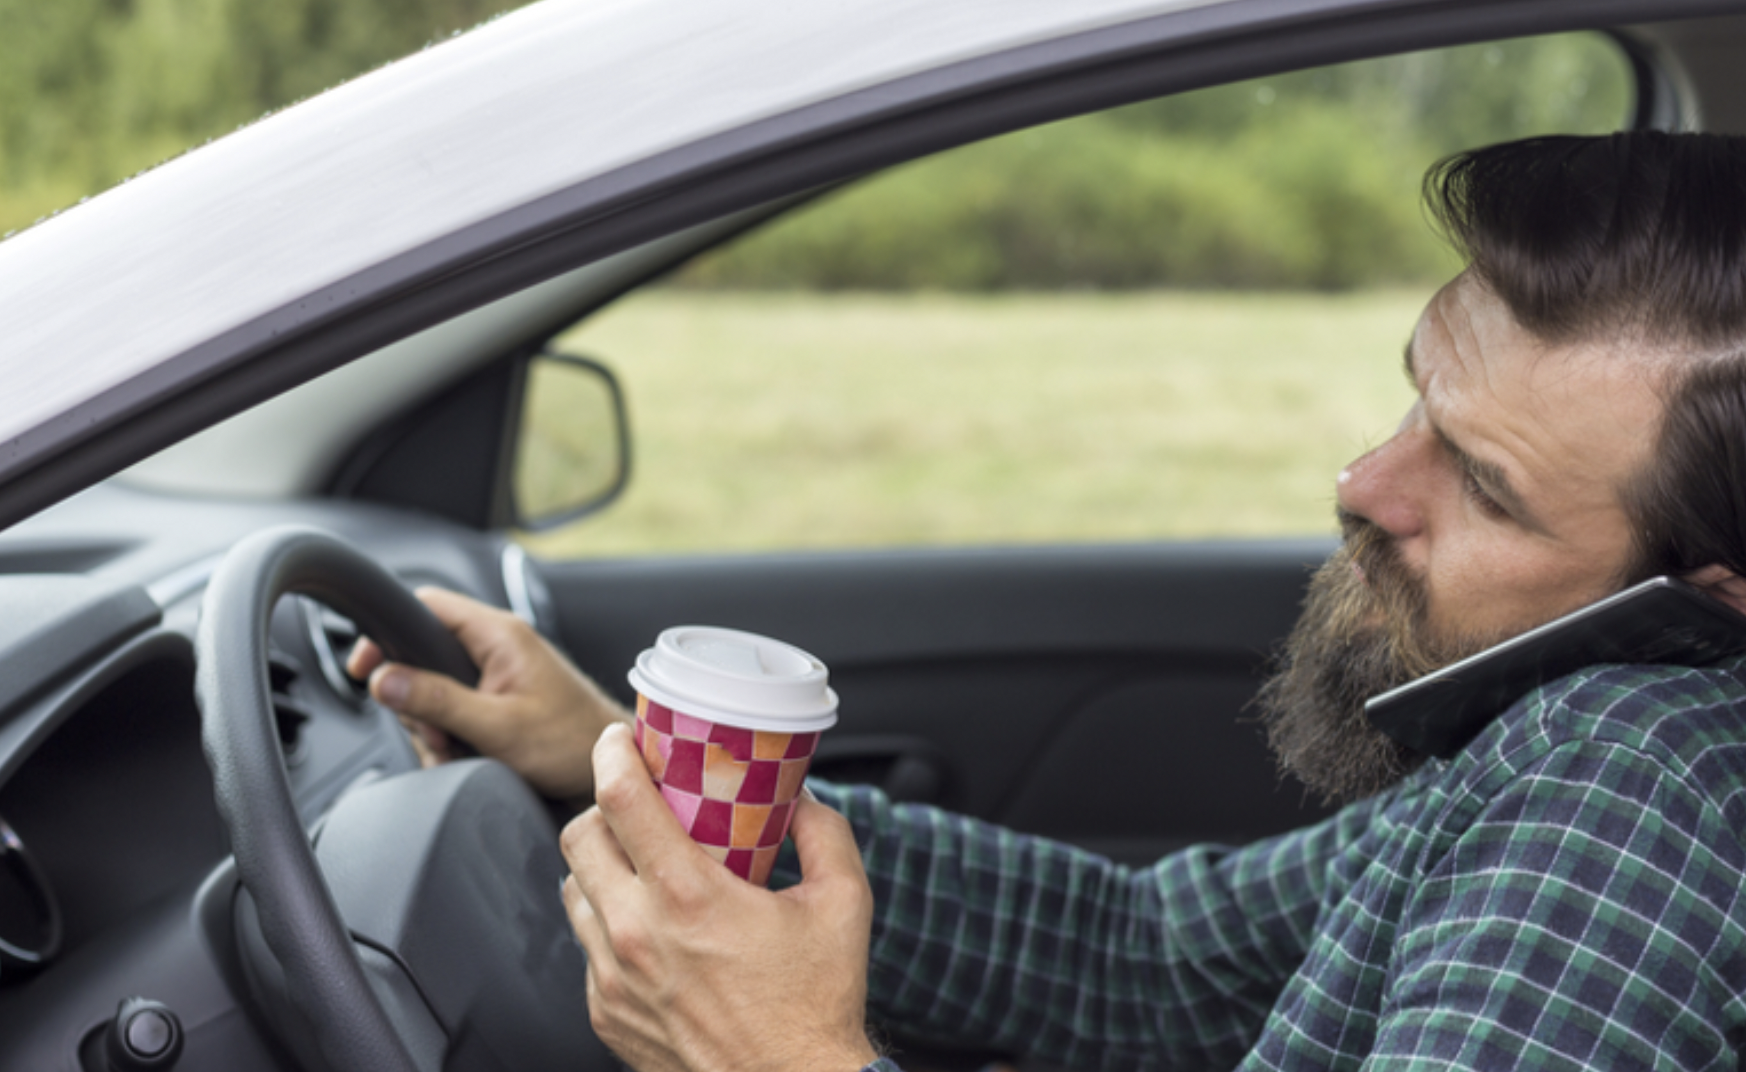 How to report distracted drivers